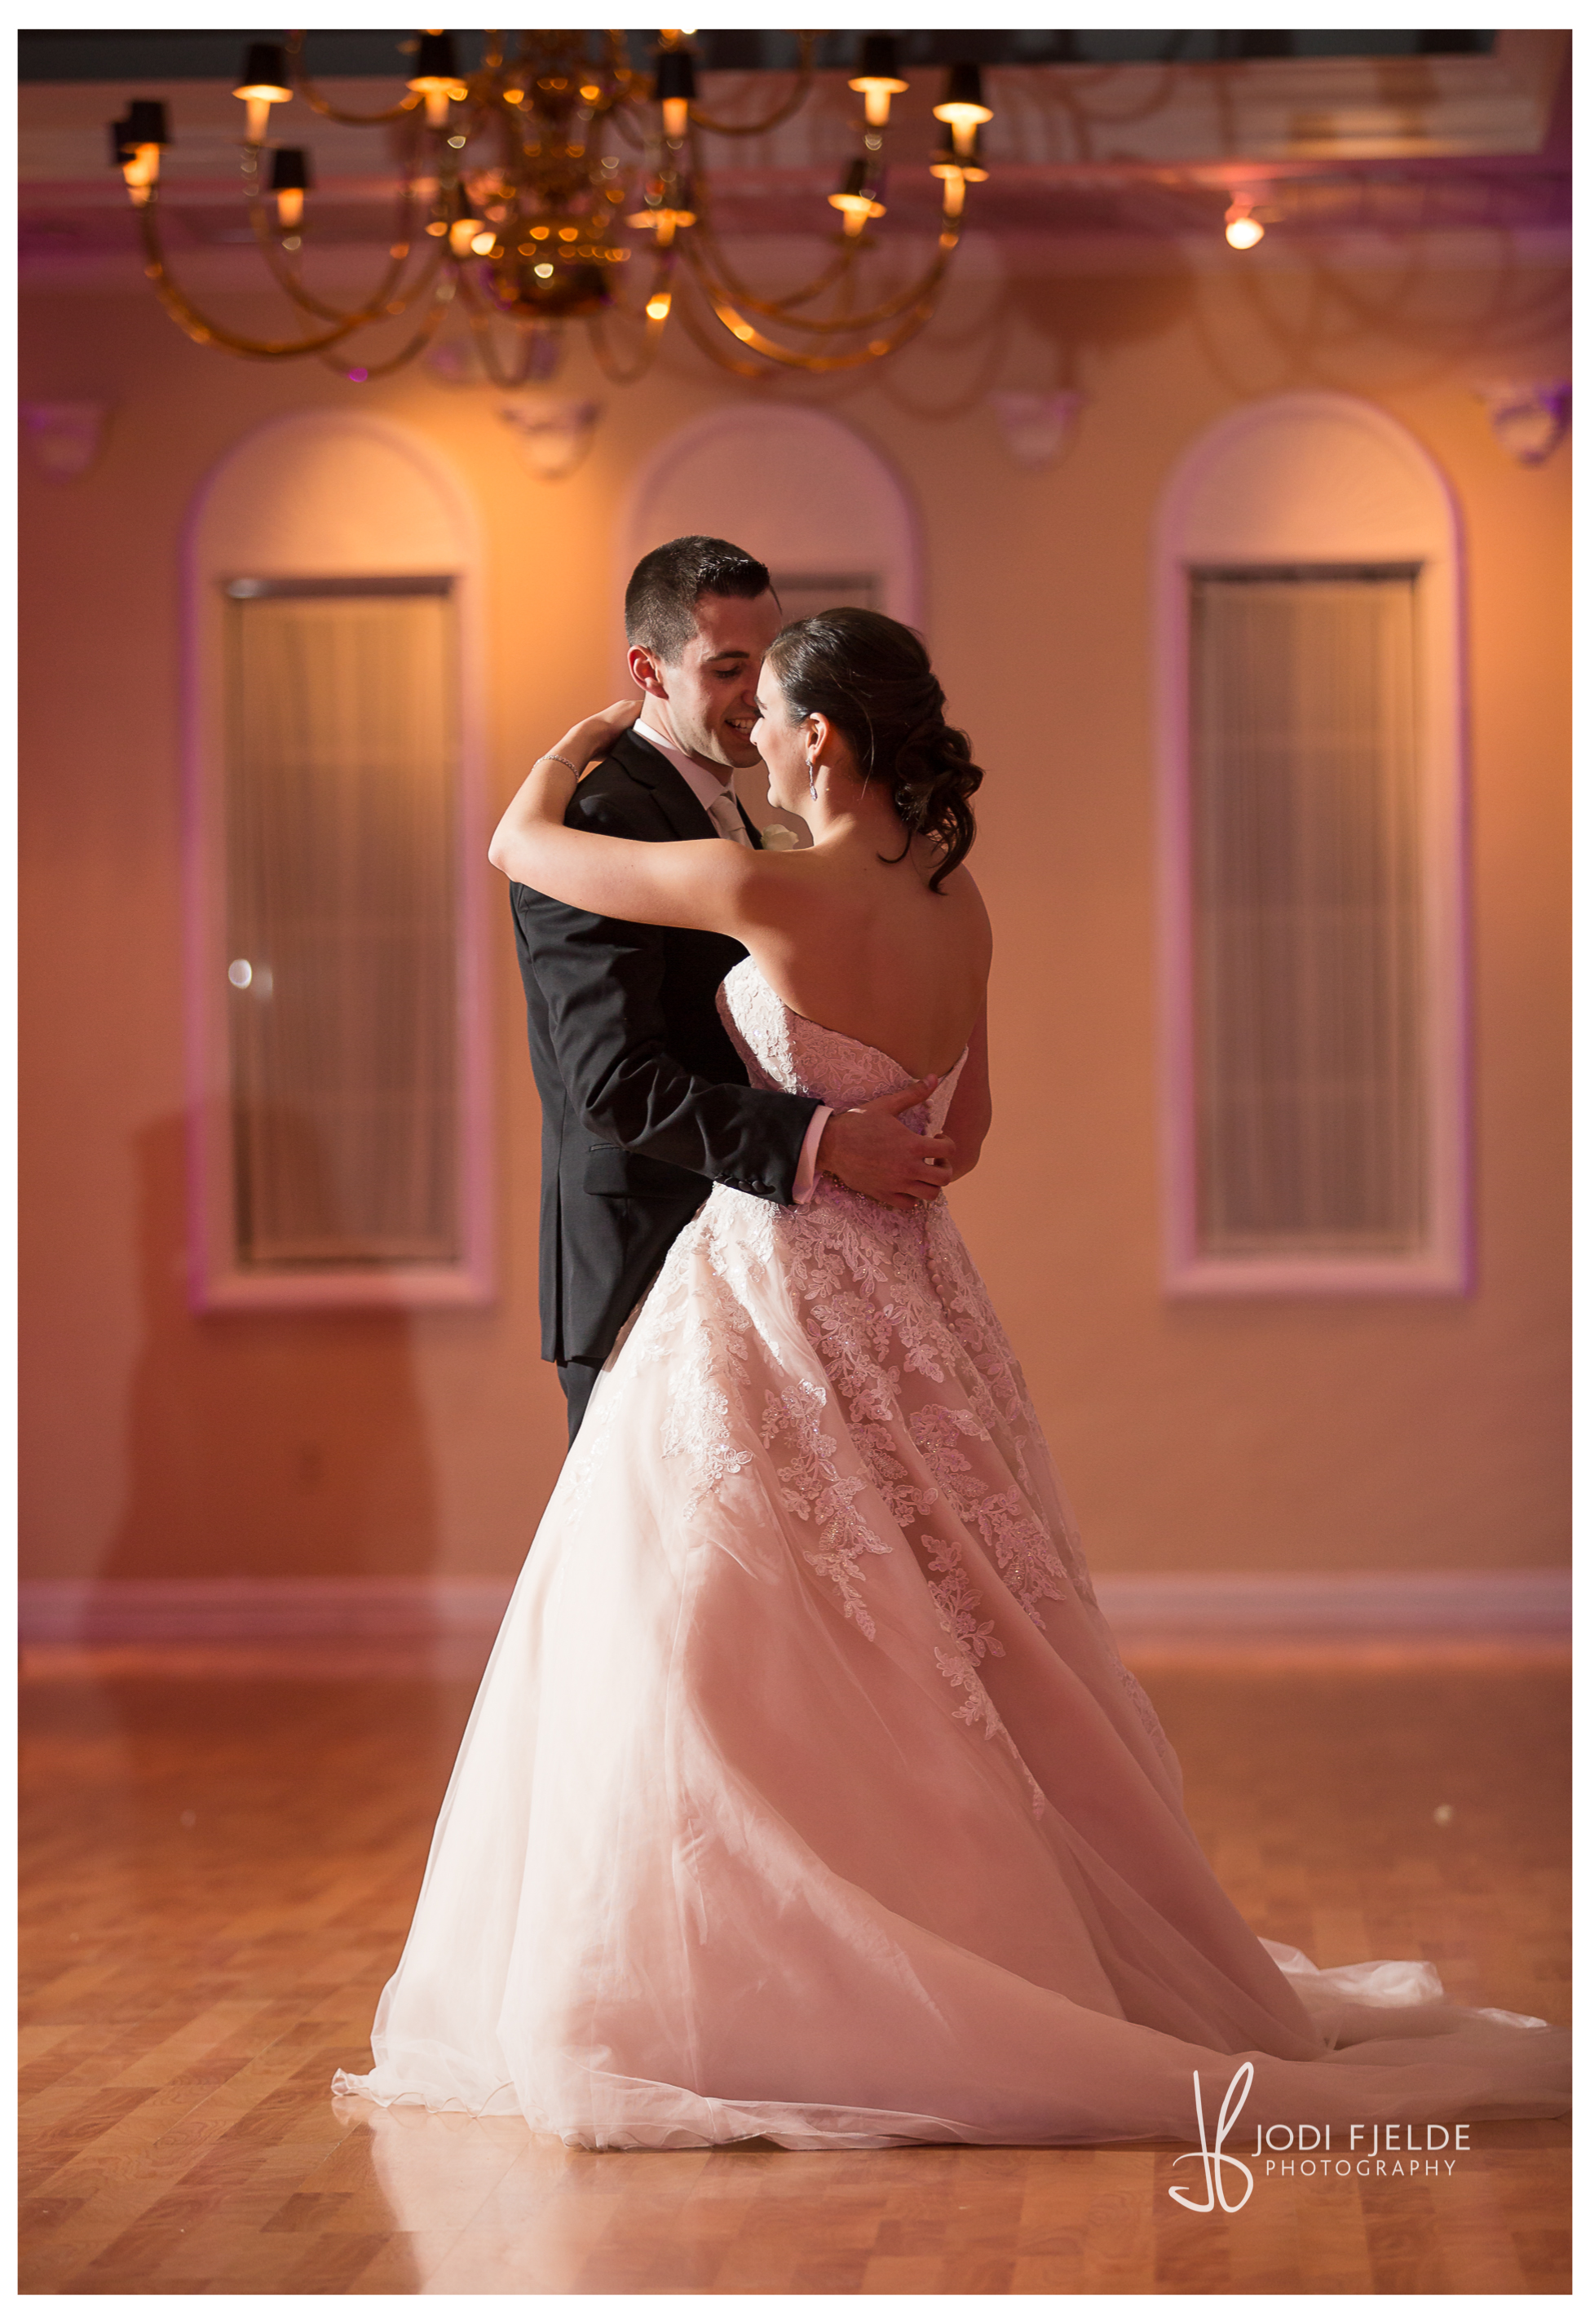 Benvenuto_Palm_Beach_Wedding_Jewish_Michelle & Jason_Jodi_Fjedle_Photography 60.jpg